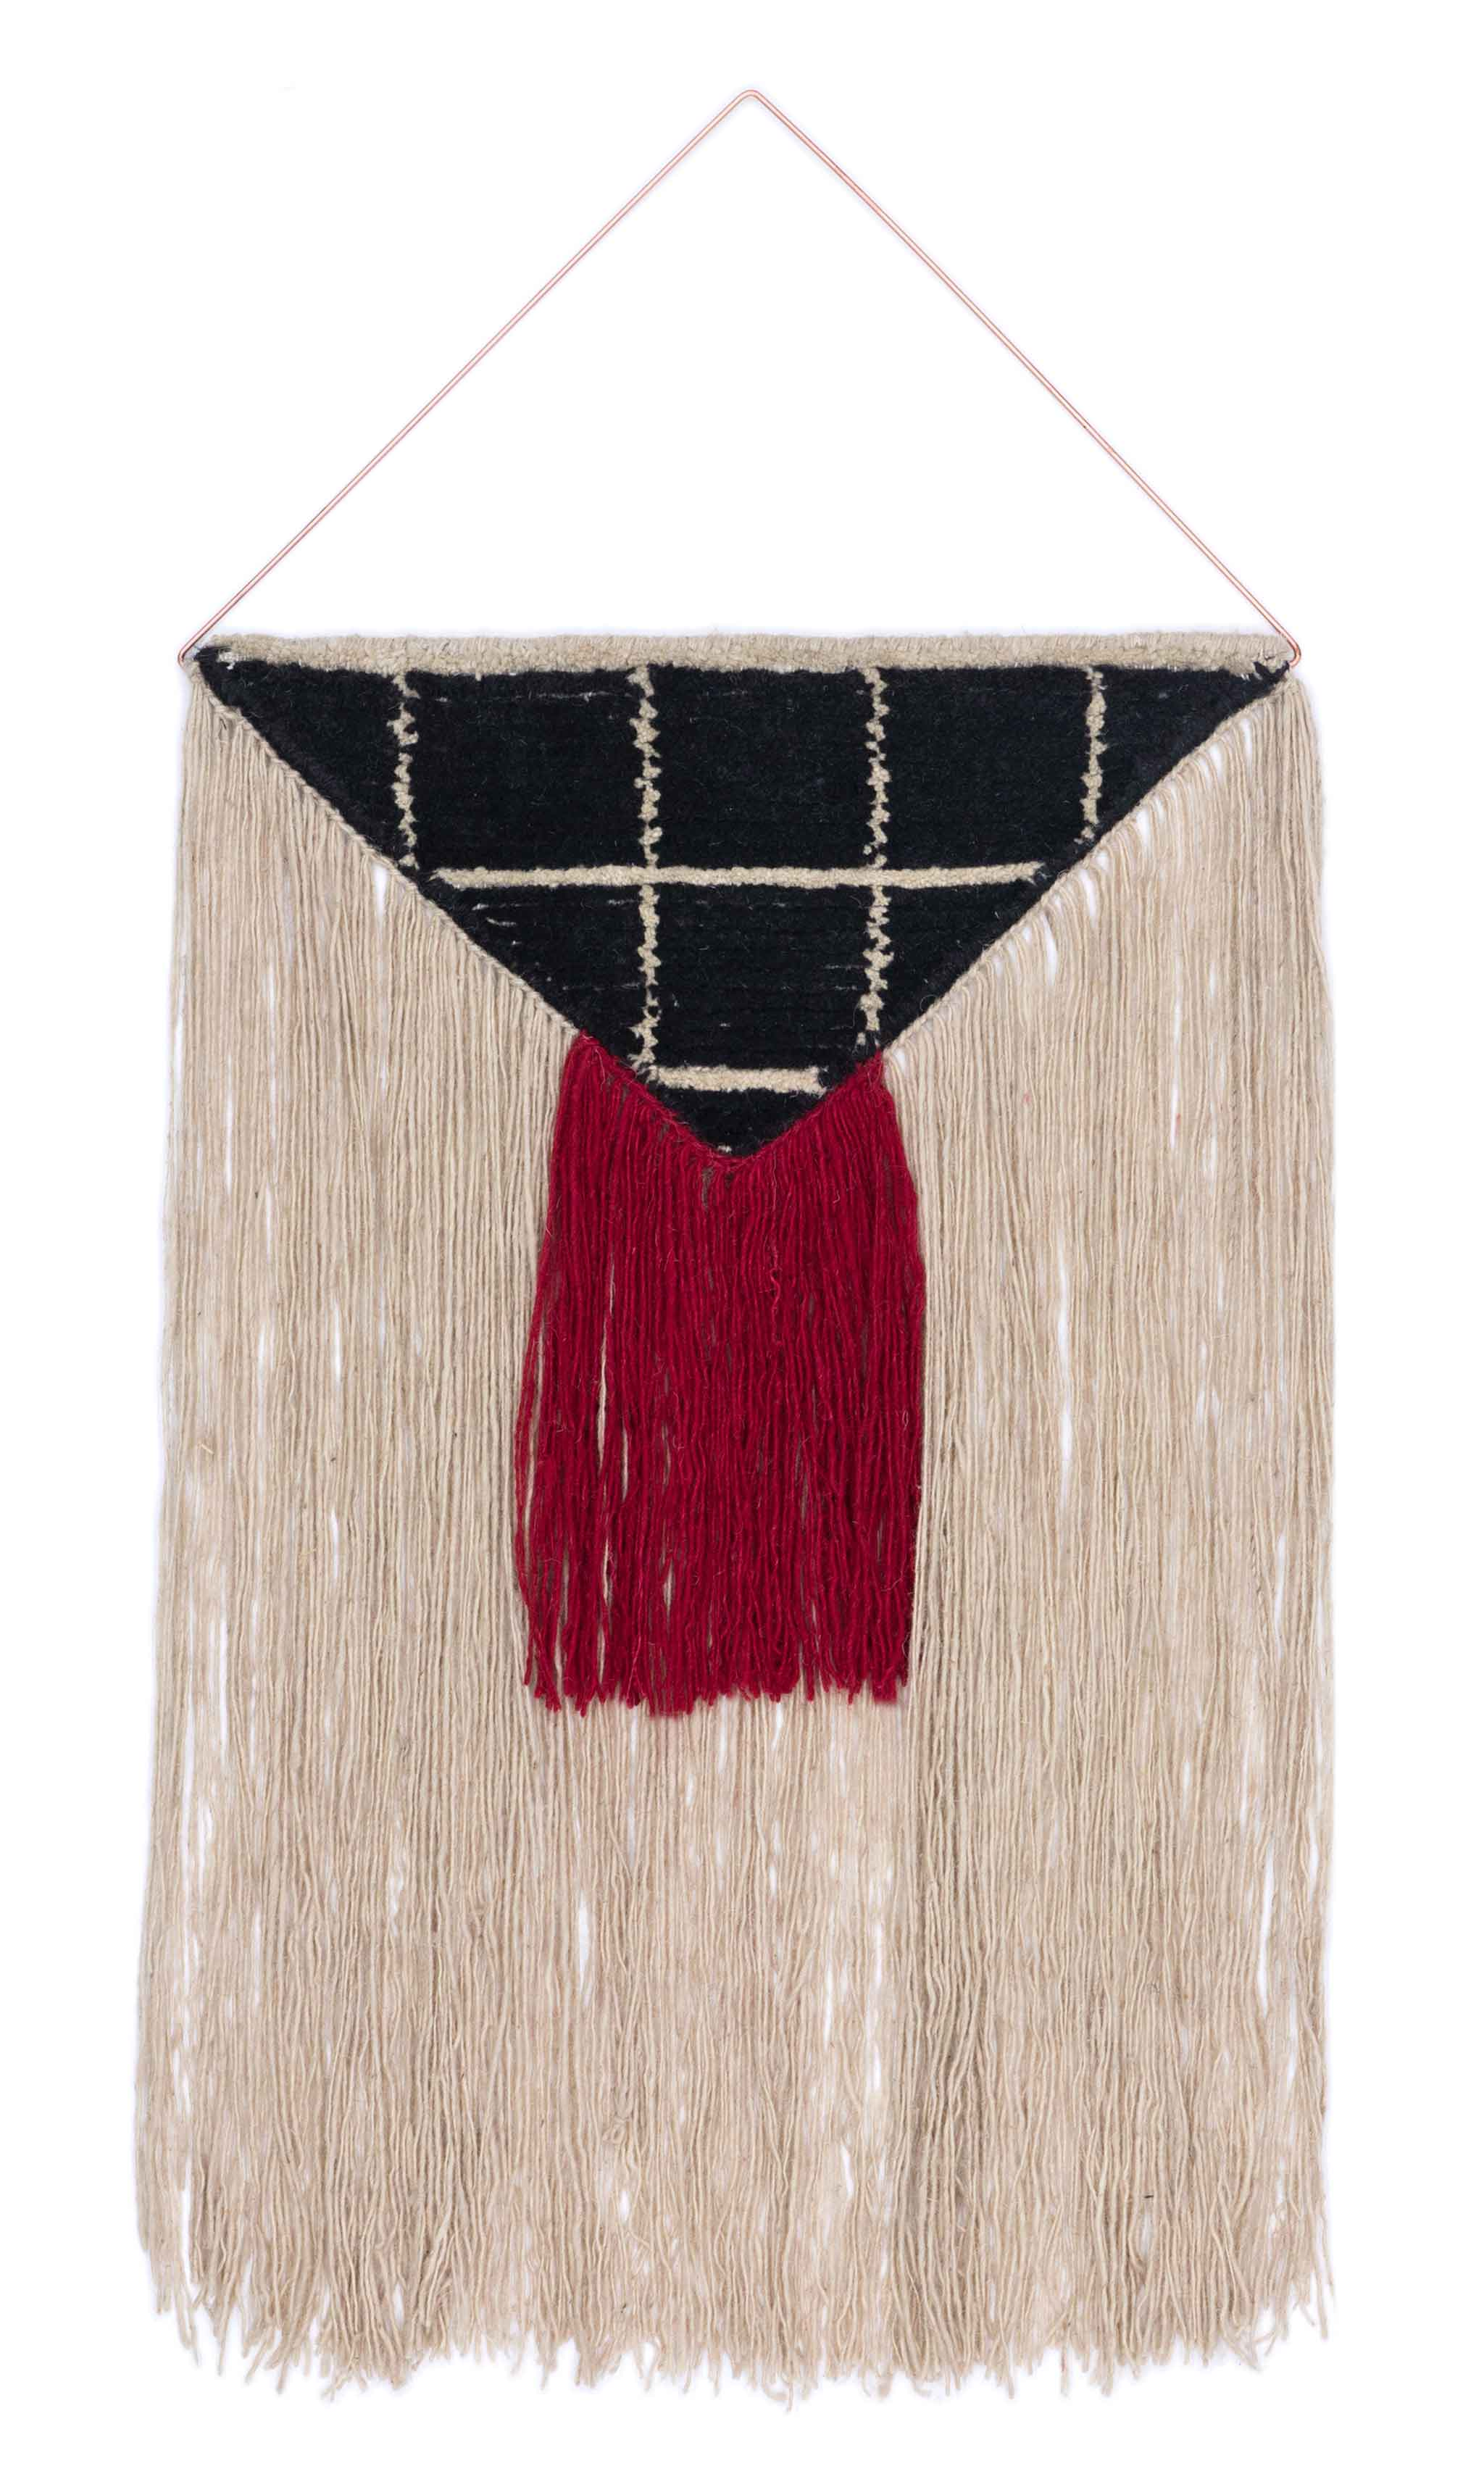 'Quadro Celeste #175' by Studiopepe for cc-tapis | Image courtesy of cc-tapis